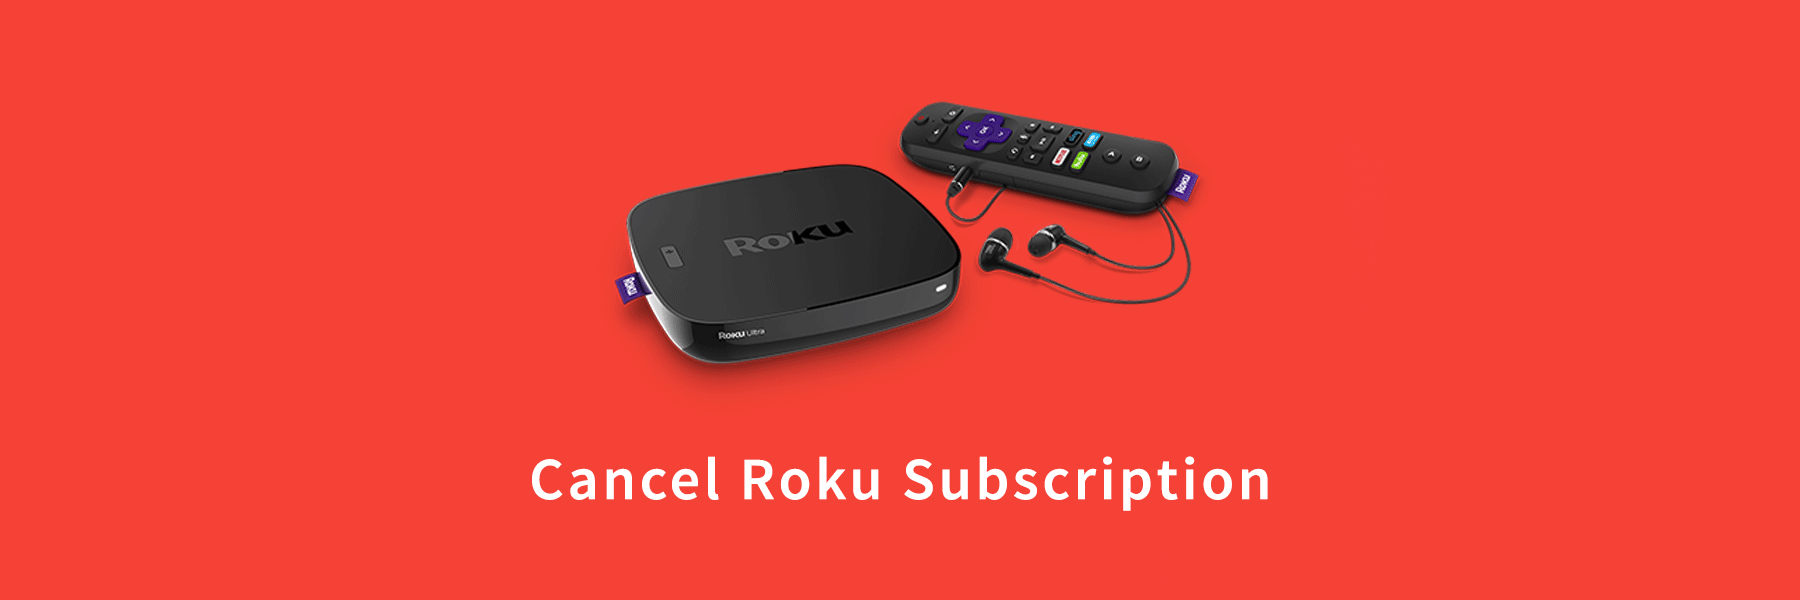 Cancel Roku Subscription